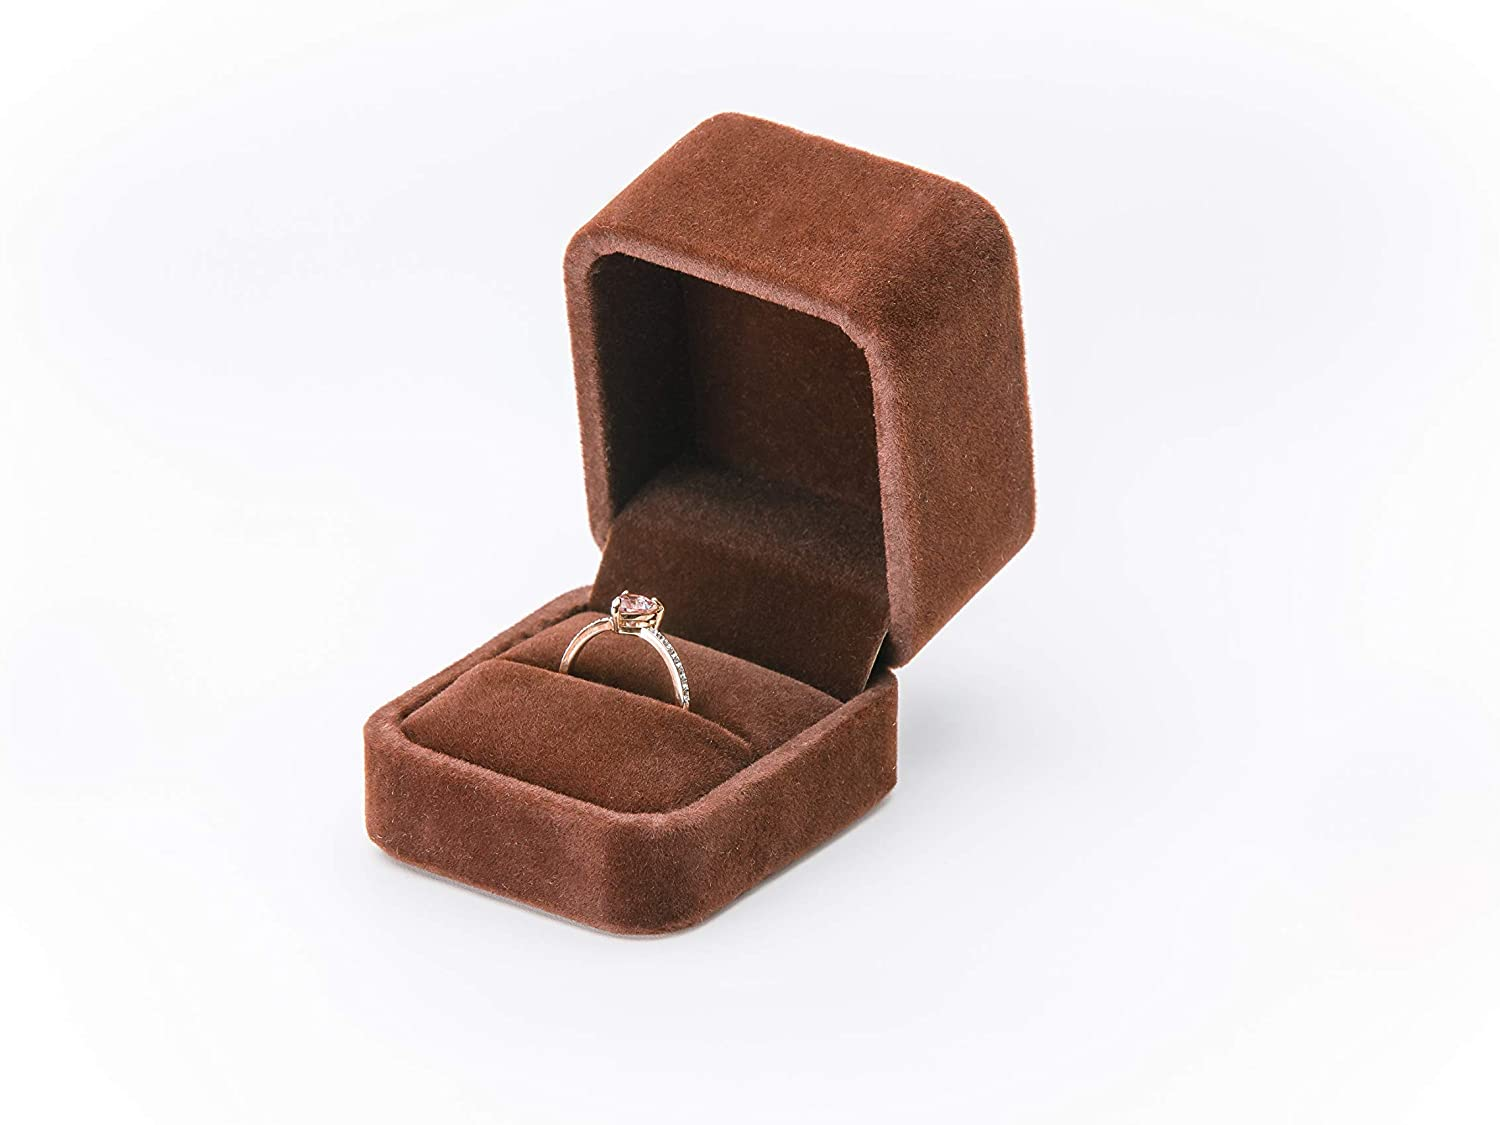 Ring Box for Proposal. Classic Small Fancy Velvet Engagement or Wedding Ceremony Ring Case Organizer Pouch/String Bag Holder for Presentation, Display or Storage. Black Navy Red Pink Brown Beige